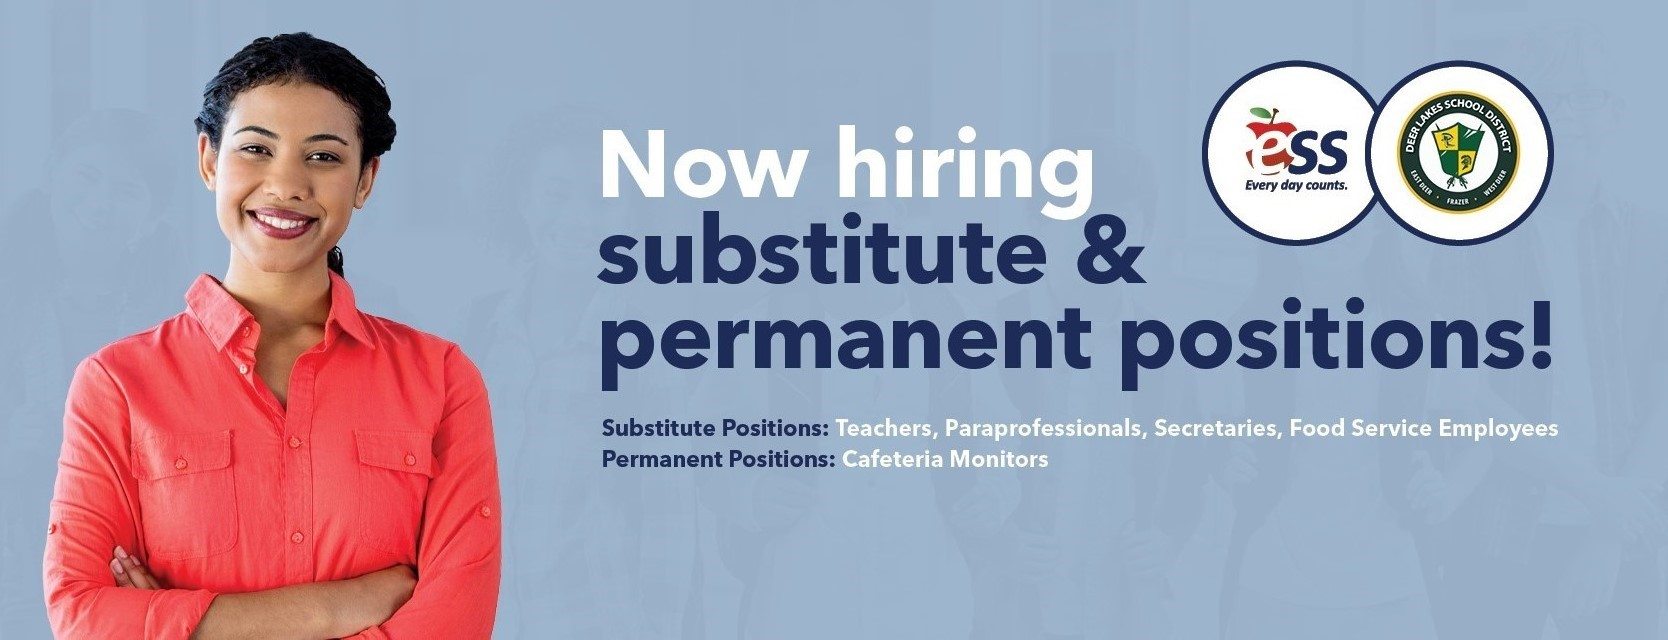 Now hiring for substitutes and permanent positions